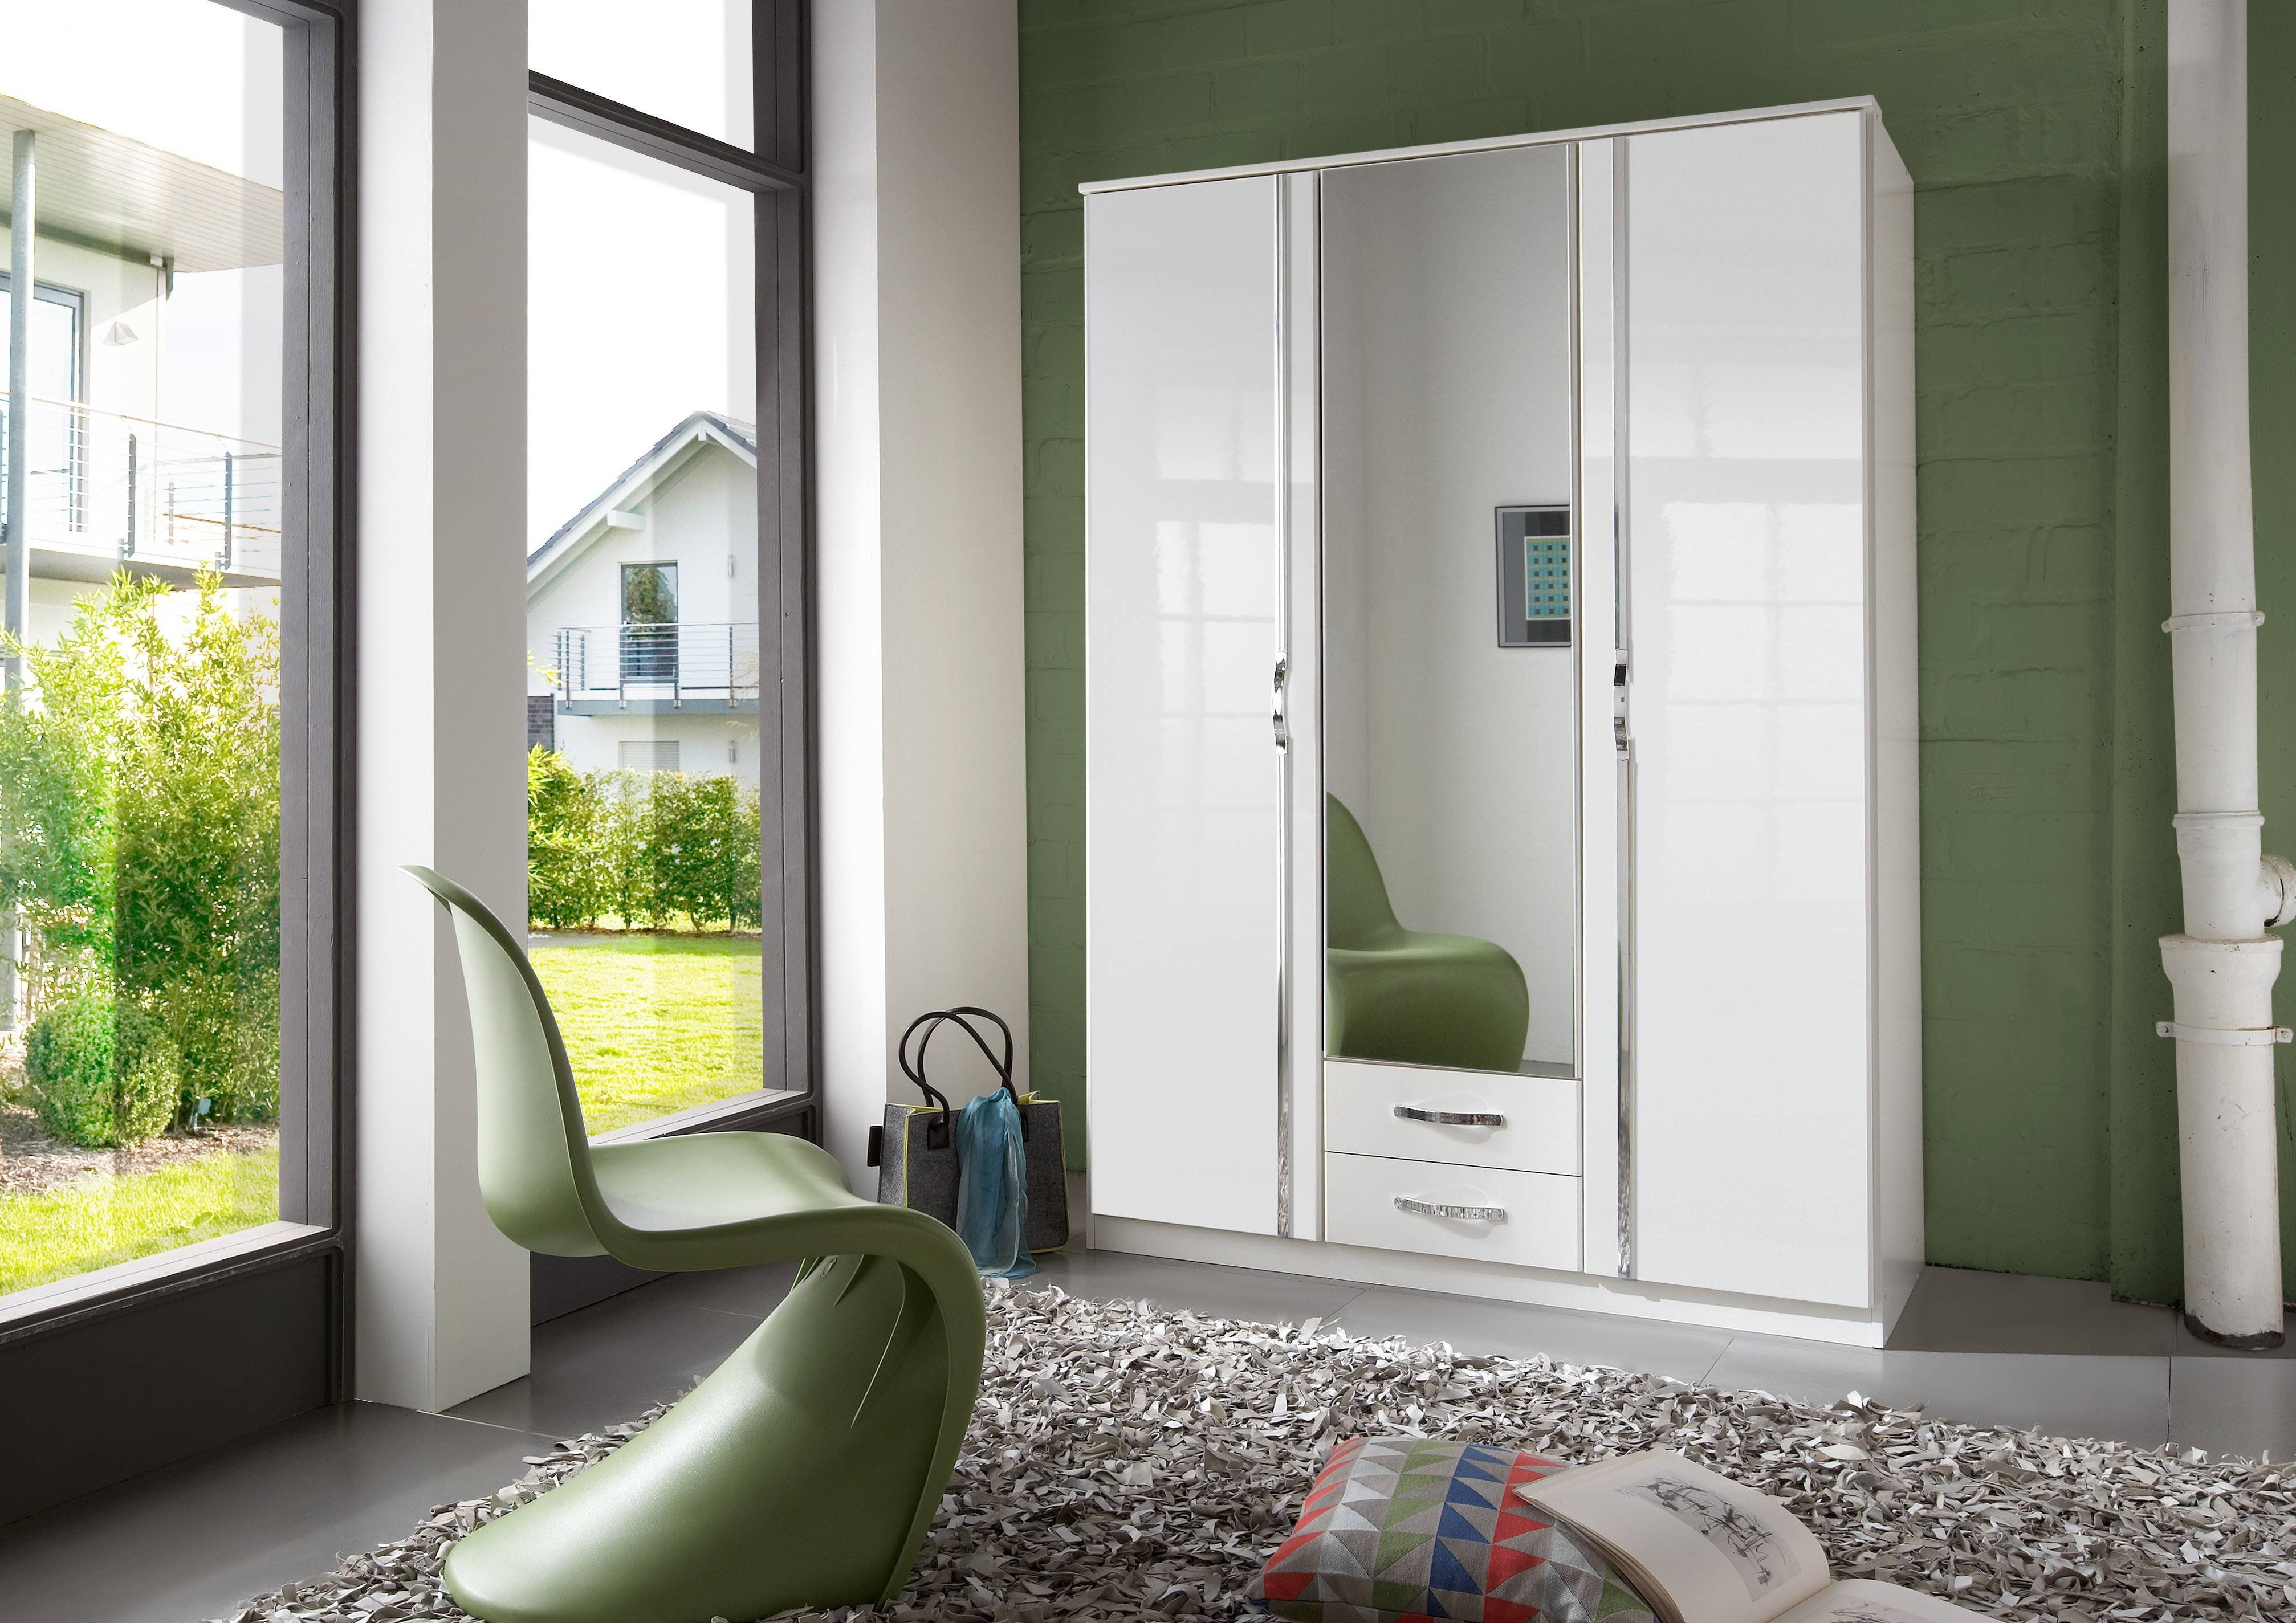 Slumberhaus 'trio' White Gloss, Chrome & Mirror 3 Door 2 Drawer in White 3 Door Wardrobes With Mirror (Image 13 of 15)